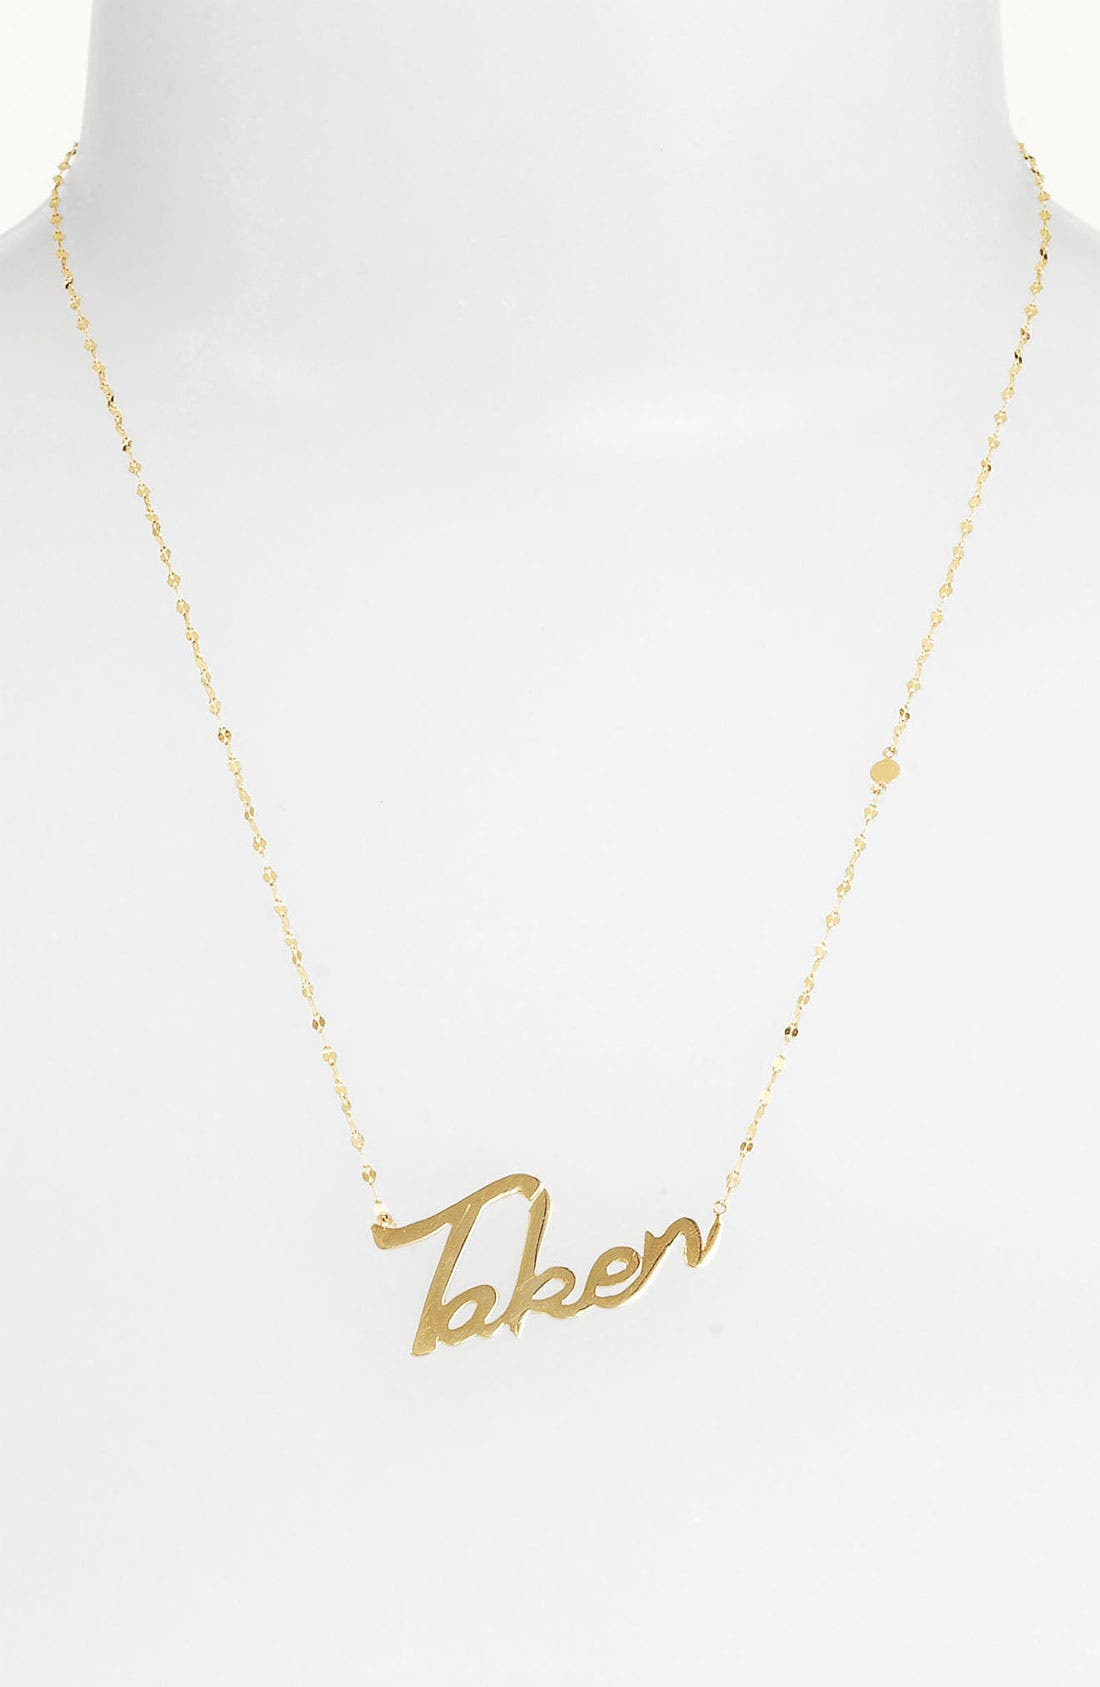 Main Image - Lana Jewelry 'Taken' Charm Necklace